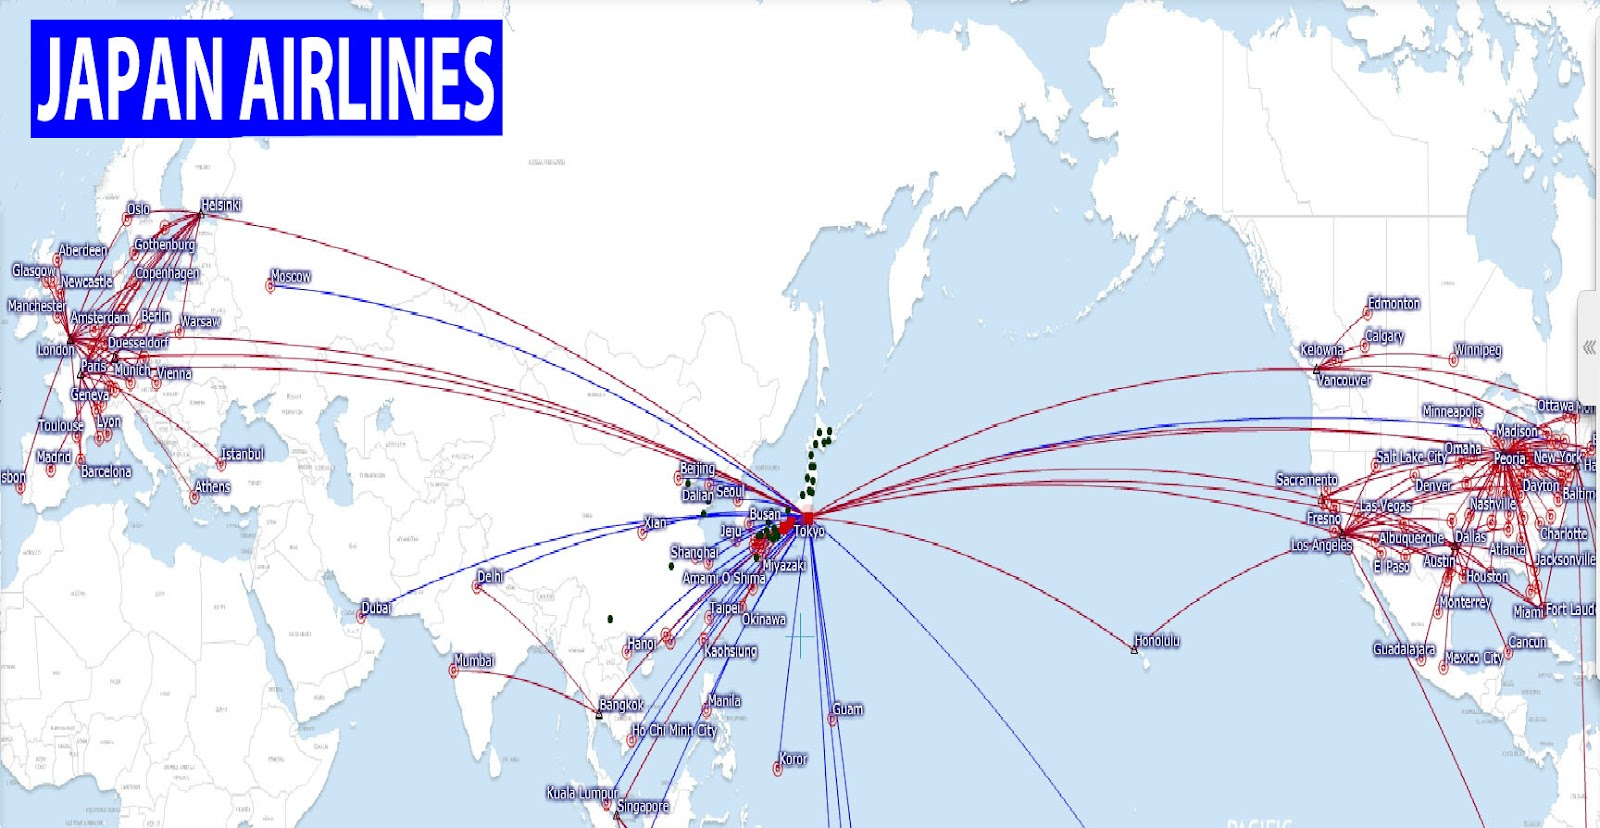 international flights: Japan Airlines route map on delta international route map, finnair route map, united airlines route map, american airlines international route map, air france route map, flight route map, cathay pacific route map, etihad route map, alitalia route map, air china international route map, cuba route map, lufthansa route map, delta air lines route map, world airline route map, china airlines route map, japan airlines route map, klm route map, iberia route map, europe by air route map, united states route map,